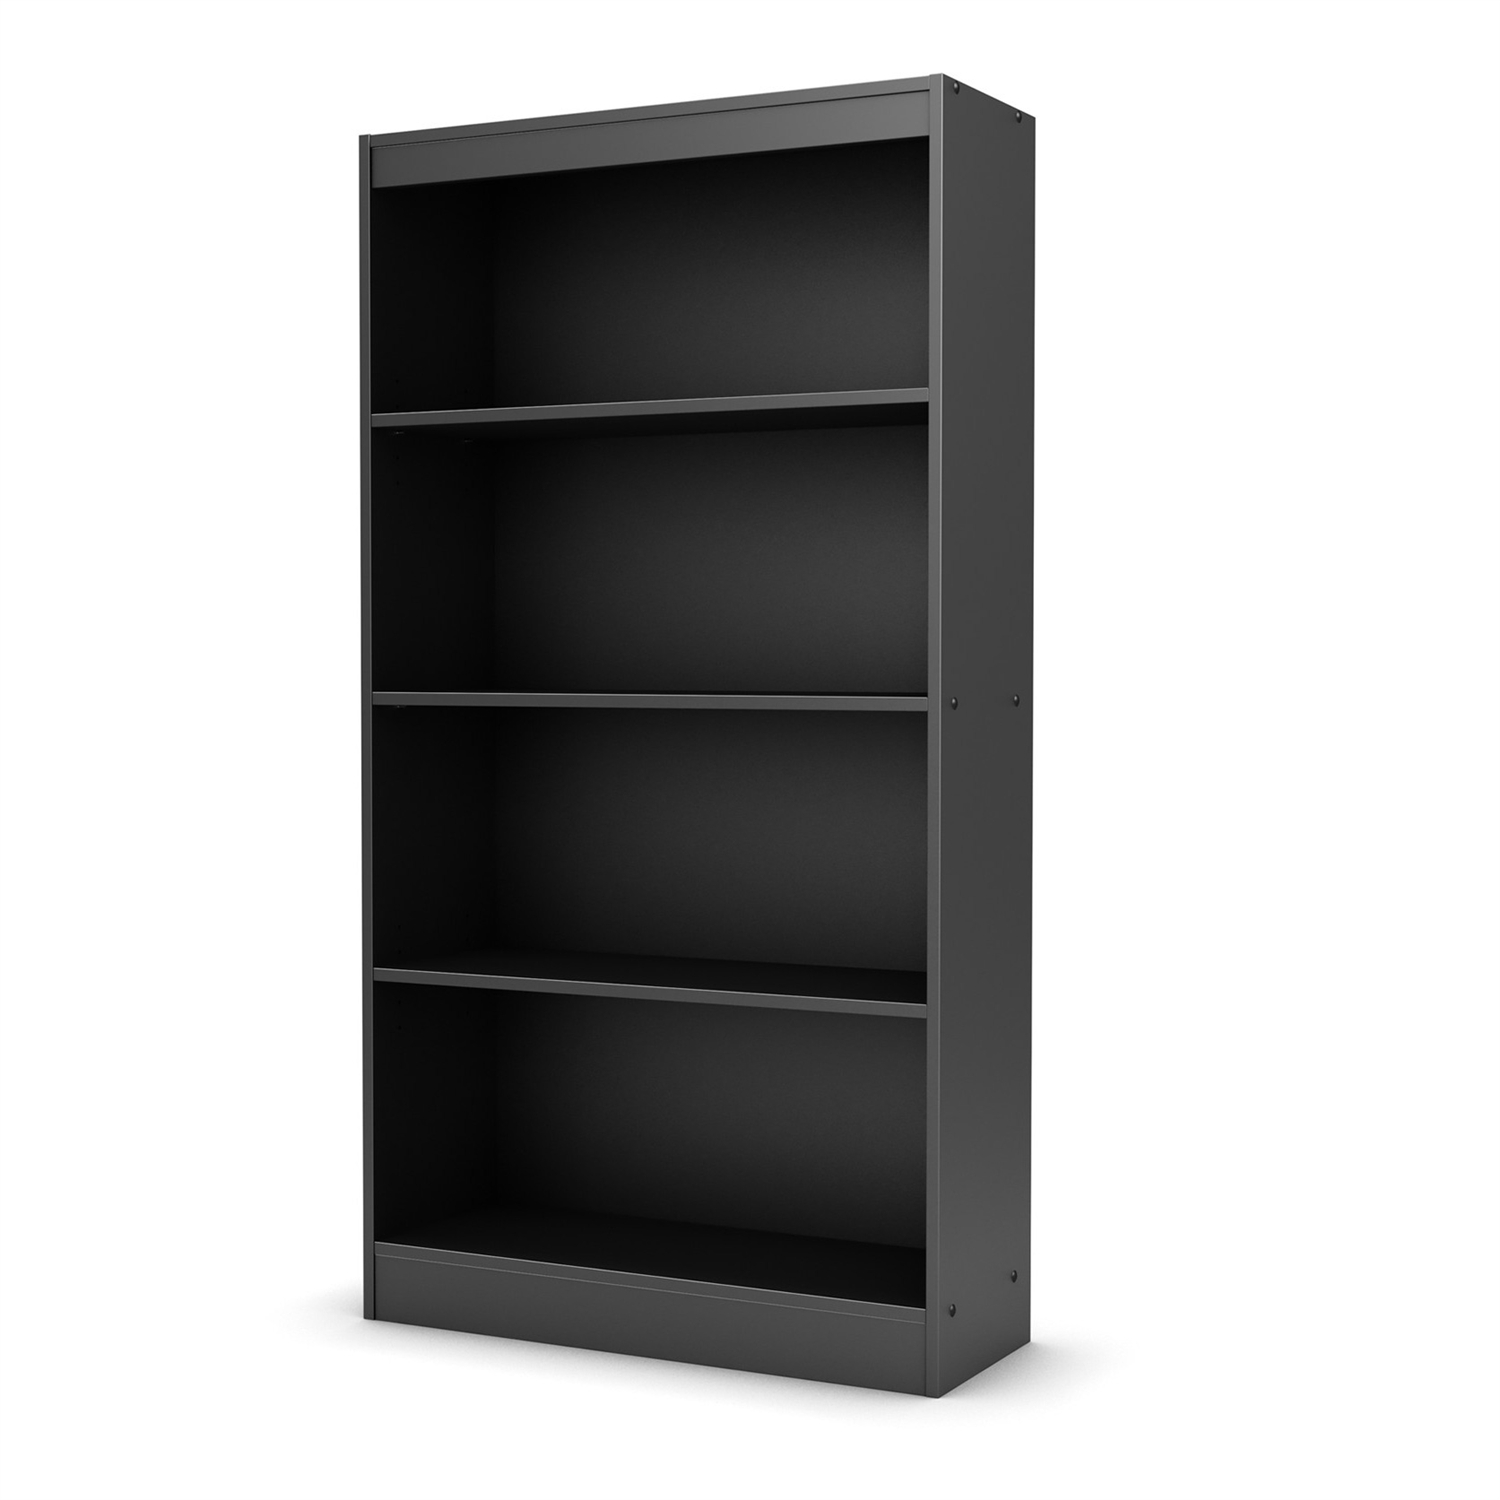 "With both functional and attractive this Four Shelf Eco-Friendly Bookcase in Black Finish is sure to enhance the look of any room in your home. Its warm finish and refined lines harmonize seamlessly with virtually any decor. Ideal for your binders, books or decorative items; This versatile bookcase can meet your every need; Shrink wrapped packaging with reinforced corners to reduce the risk of shipping damage; Features a contemporary style; Features 2 fixed shelves and 2 adjustable shelves; South Shore Industries Ltd. provides the original buyer with a warranty covering ""defects"" on furniture parts and workmanship for a period of 5 years from the date of purchase."